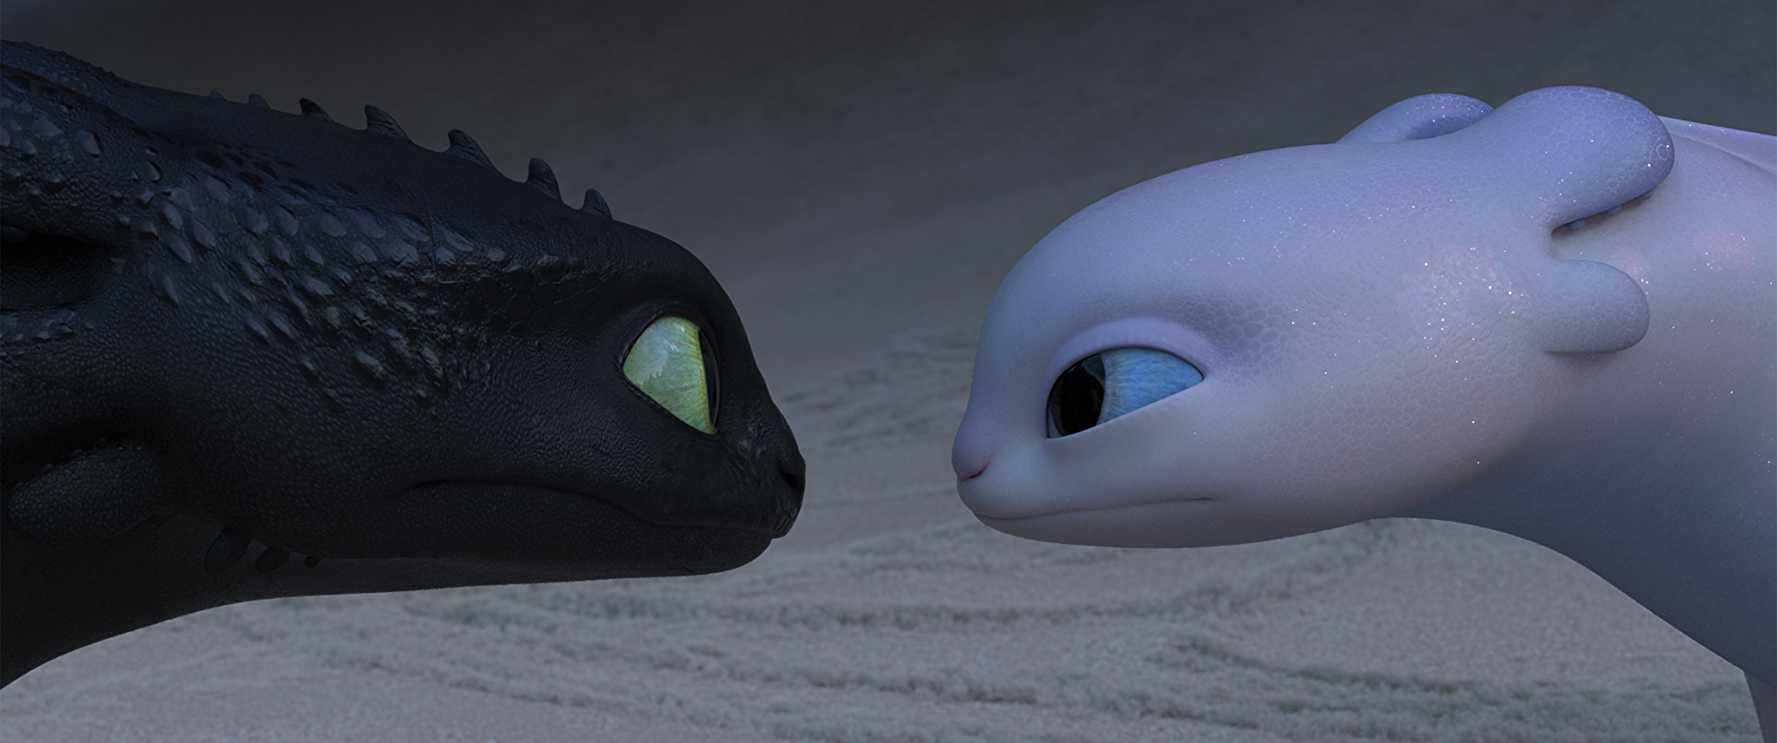 Toothless will find one of his kind. (IMDb)